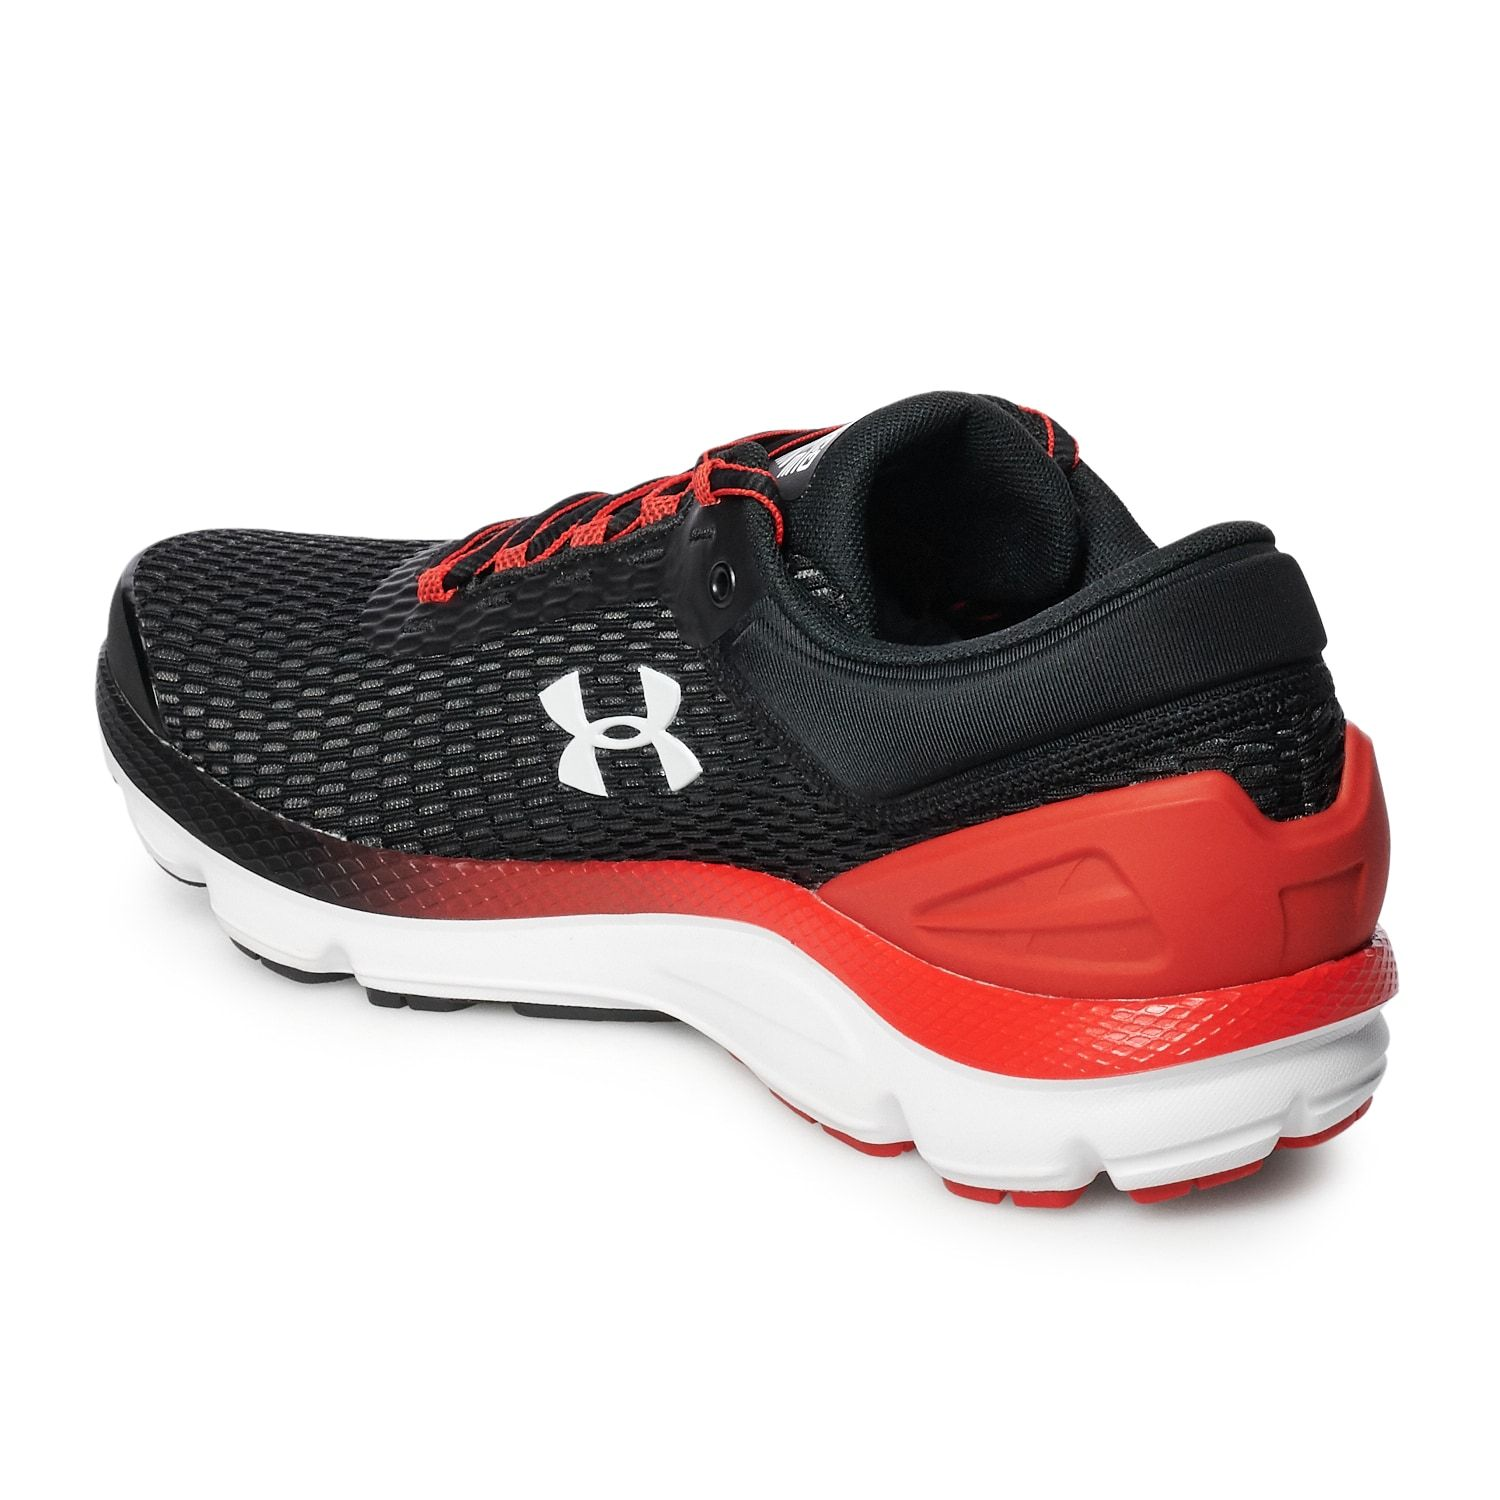 13aef214 Under Armour Charged Intake 3 Men's Running Shoes #Intake, #Charged ...